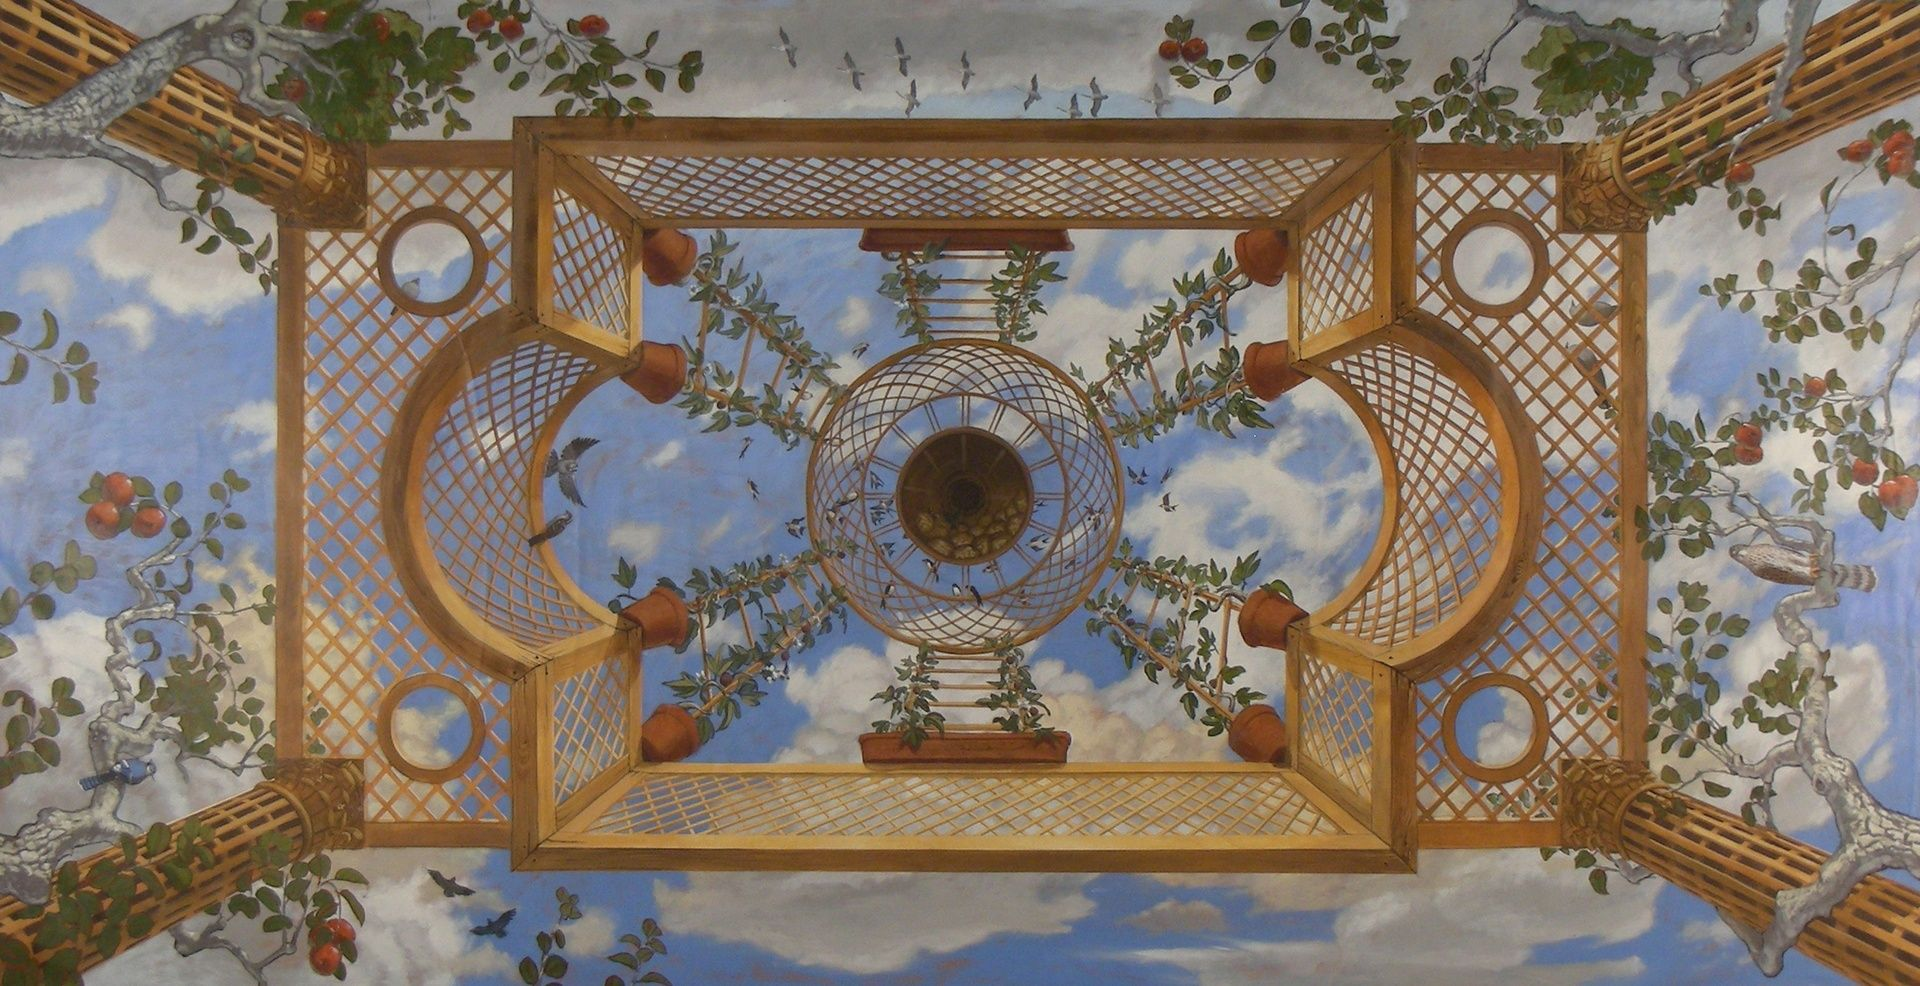 Steve Shriver Trompe L Oeil Sky Outrageously Beautiful